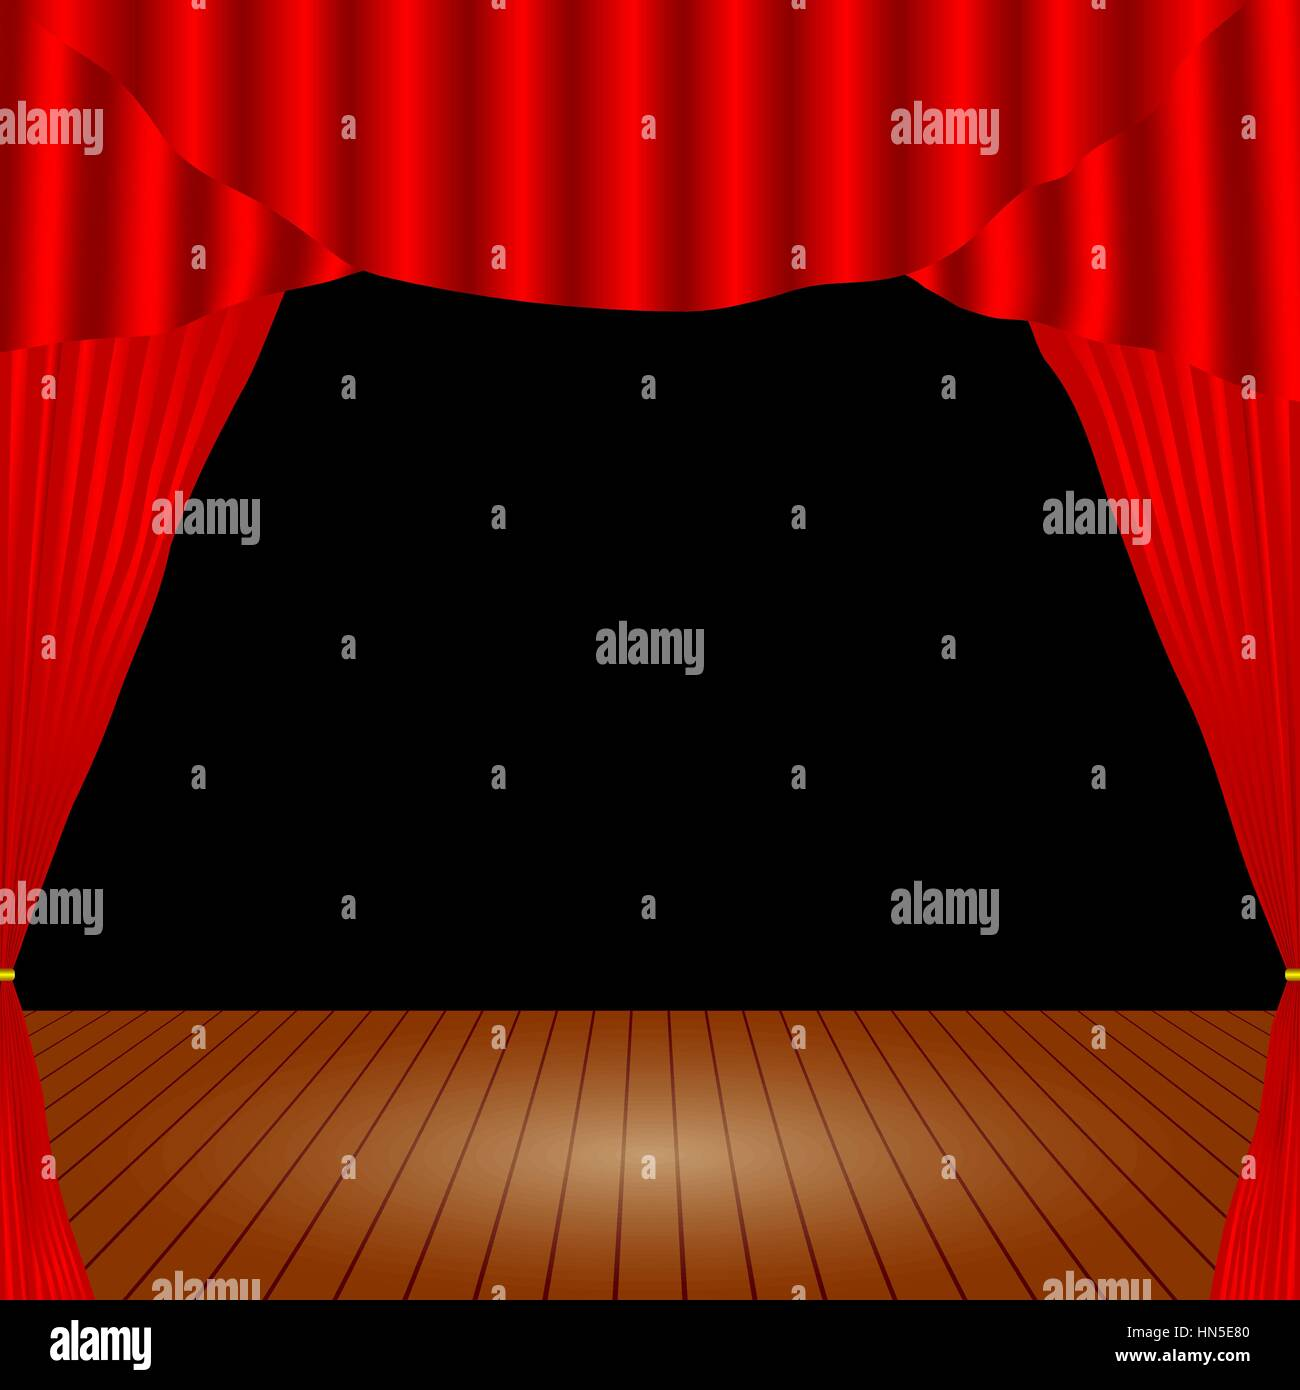 Cartoon theater. Theater curtain. Open theater curtain. Red silk side scenes on stage. Stock vector - Stock Vector